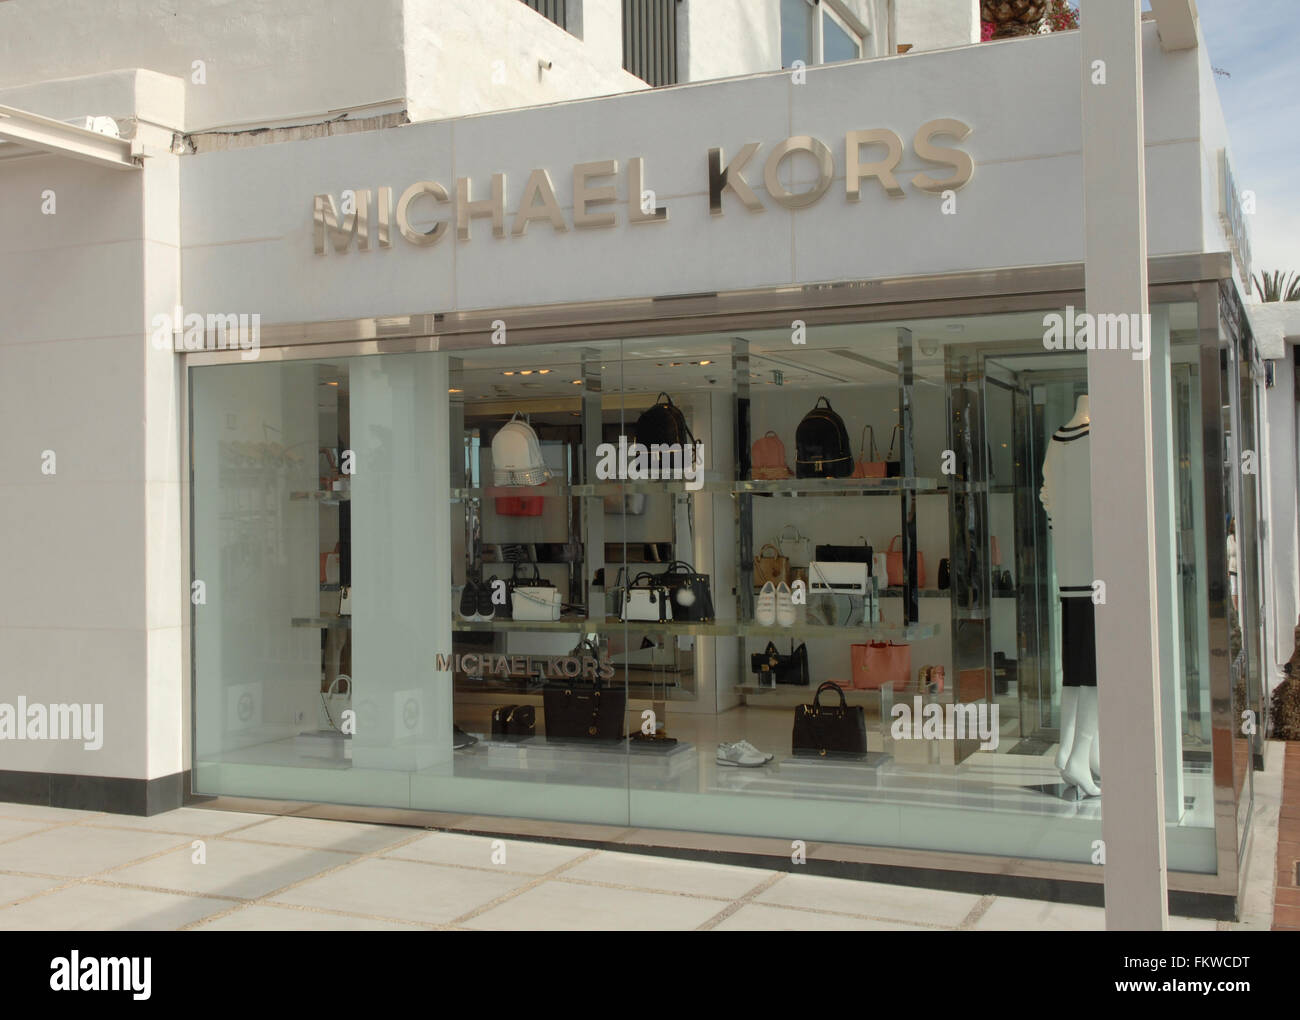 14f4bfdc610e Michael Kors shop in Puerto Banus in Malaga Stock Photo: 98288900 ...